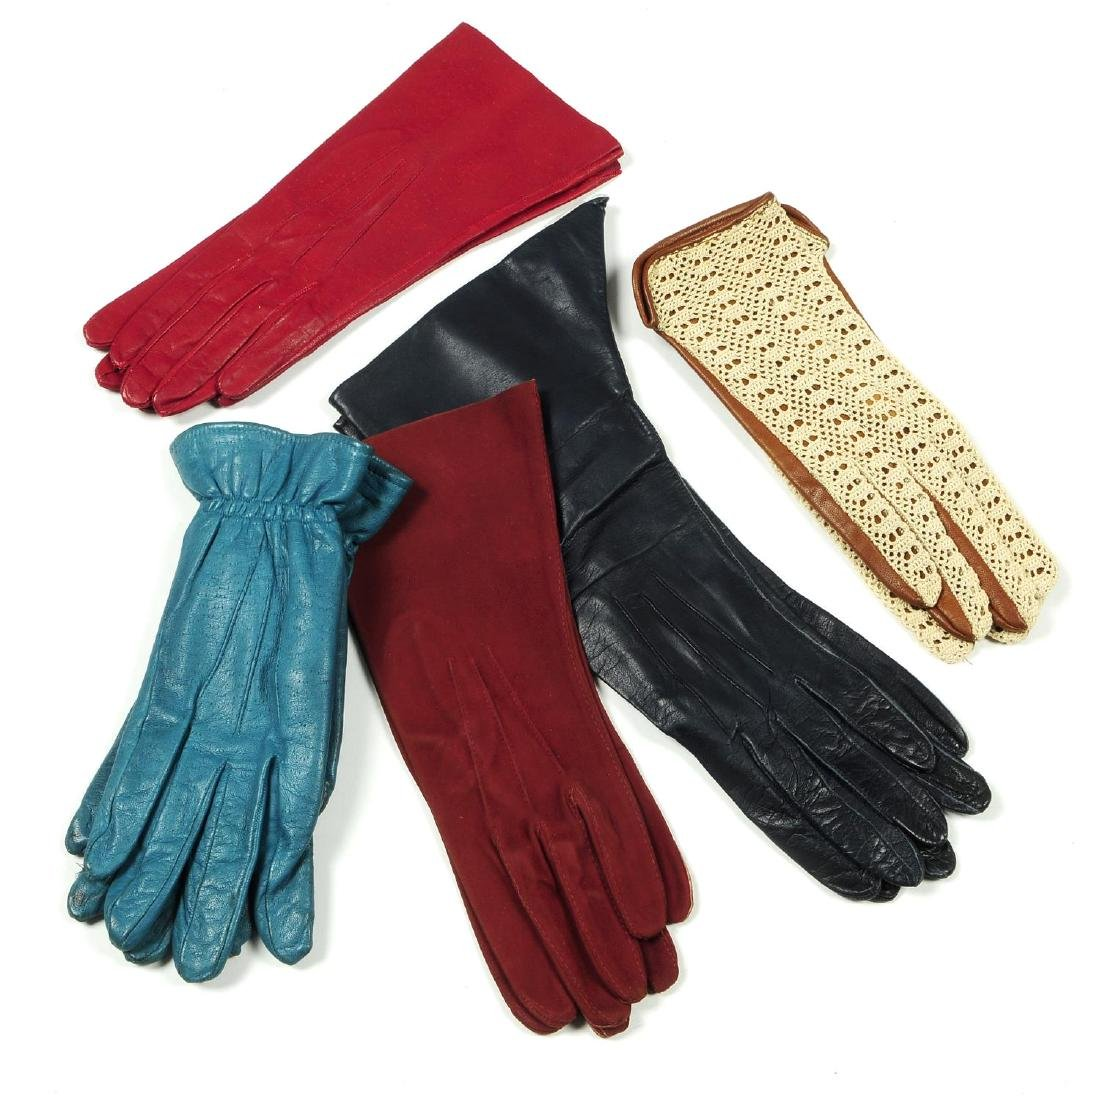 A selection of vintage gloves. To include twenty pairs